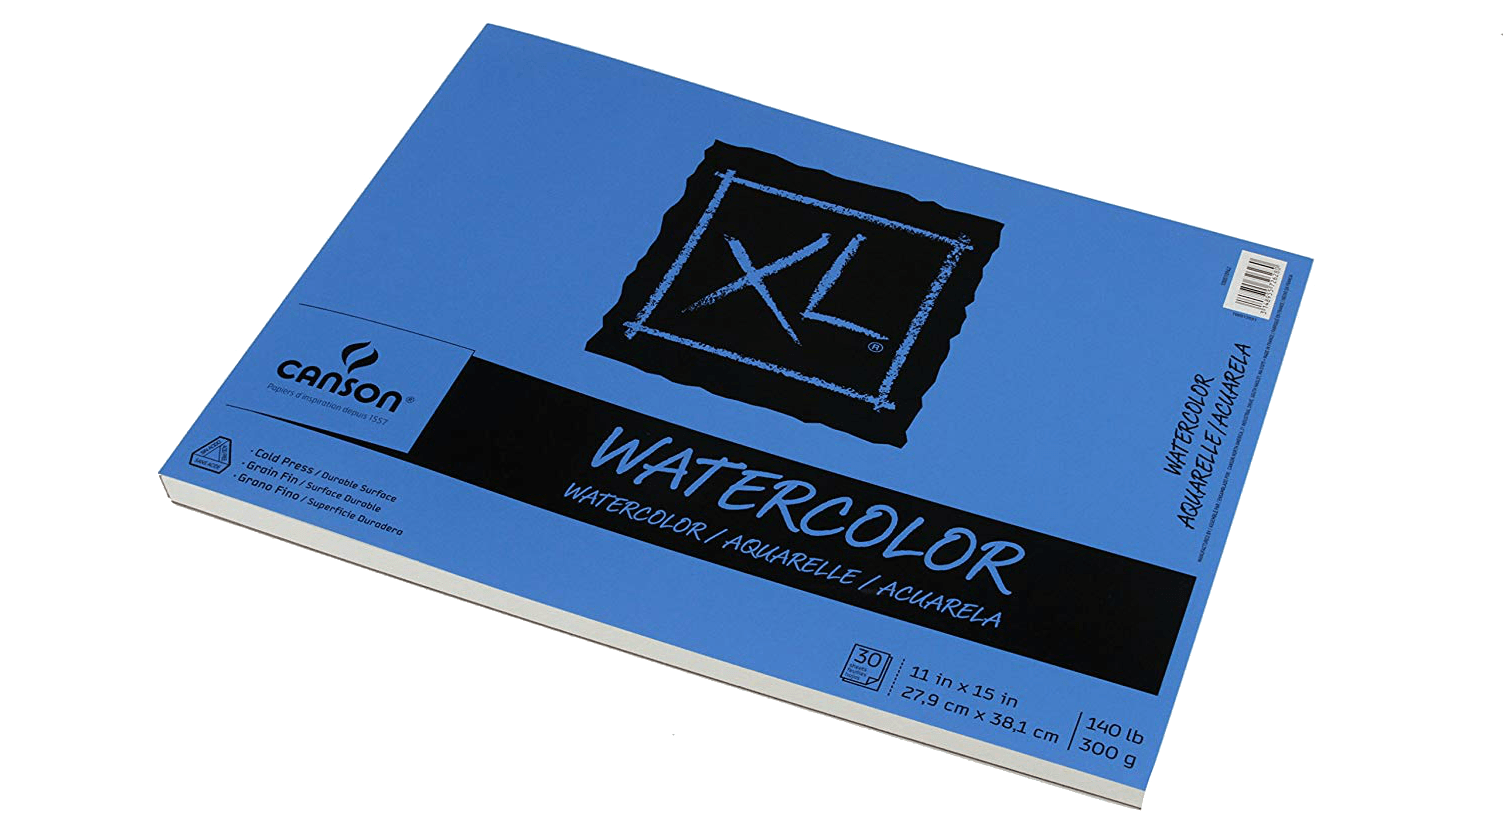 Canson XL Series Watercolor paper